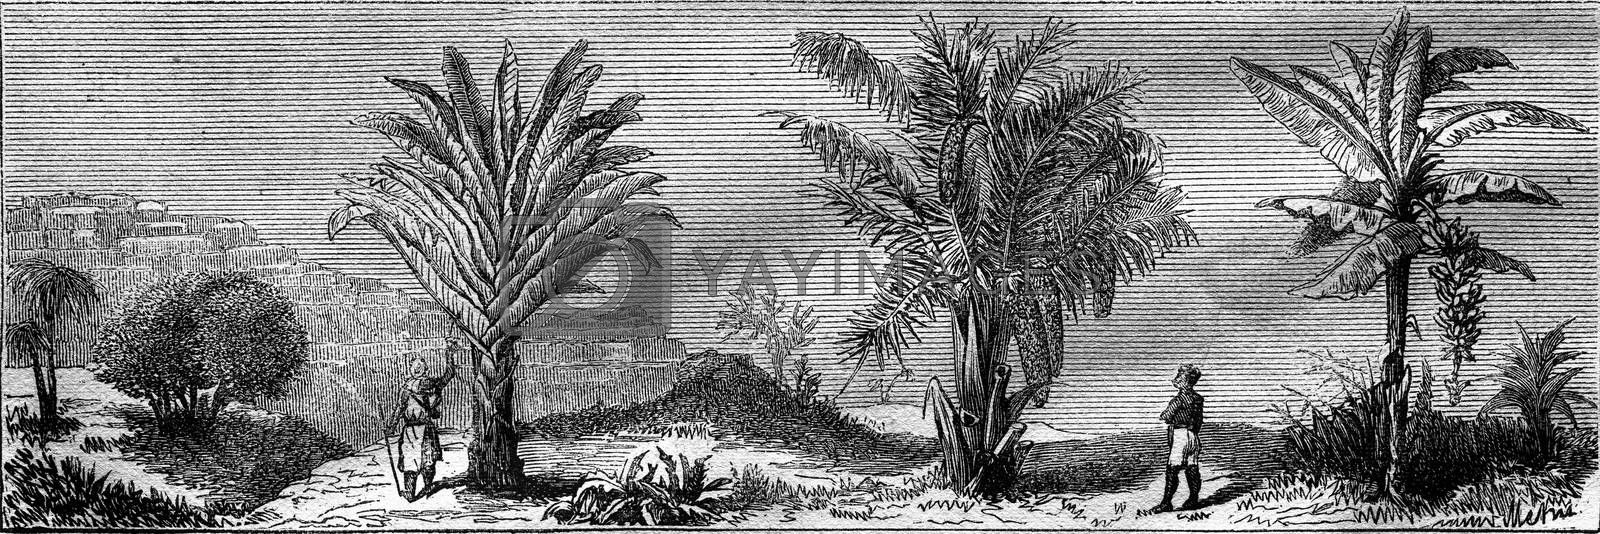 Model composition, the Travellers Tree, the Sago, the Banamer, vintage engraved illustration. Magasin Pittoresque 1877.